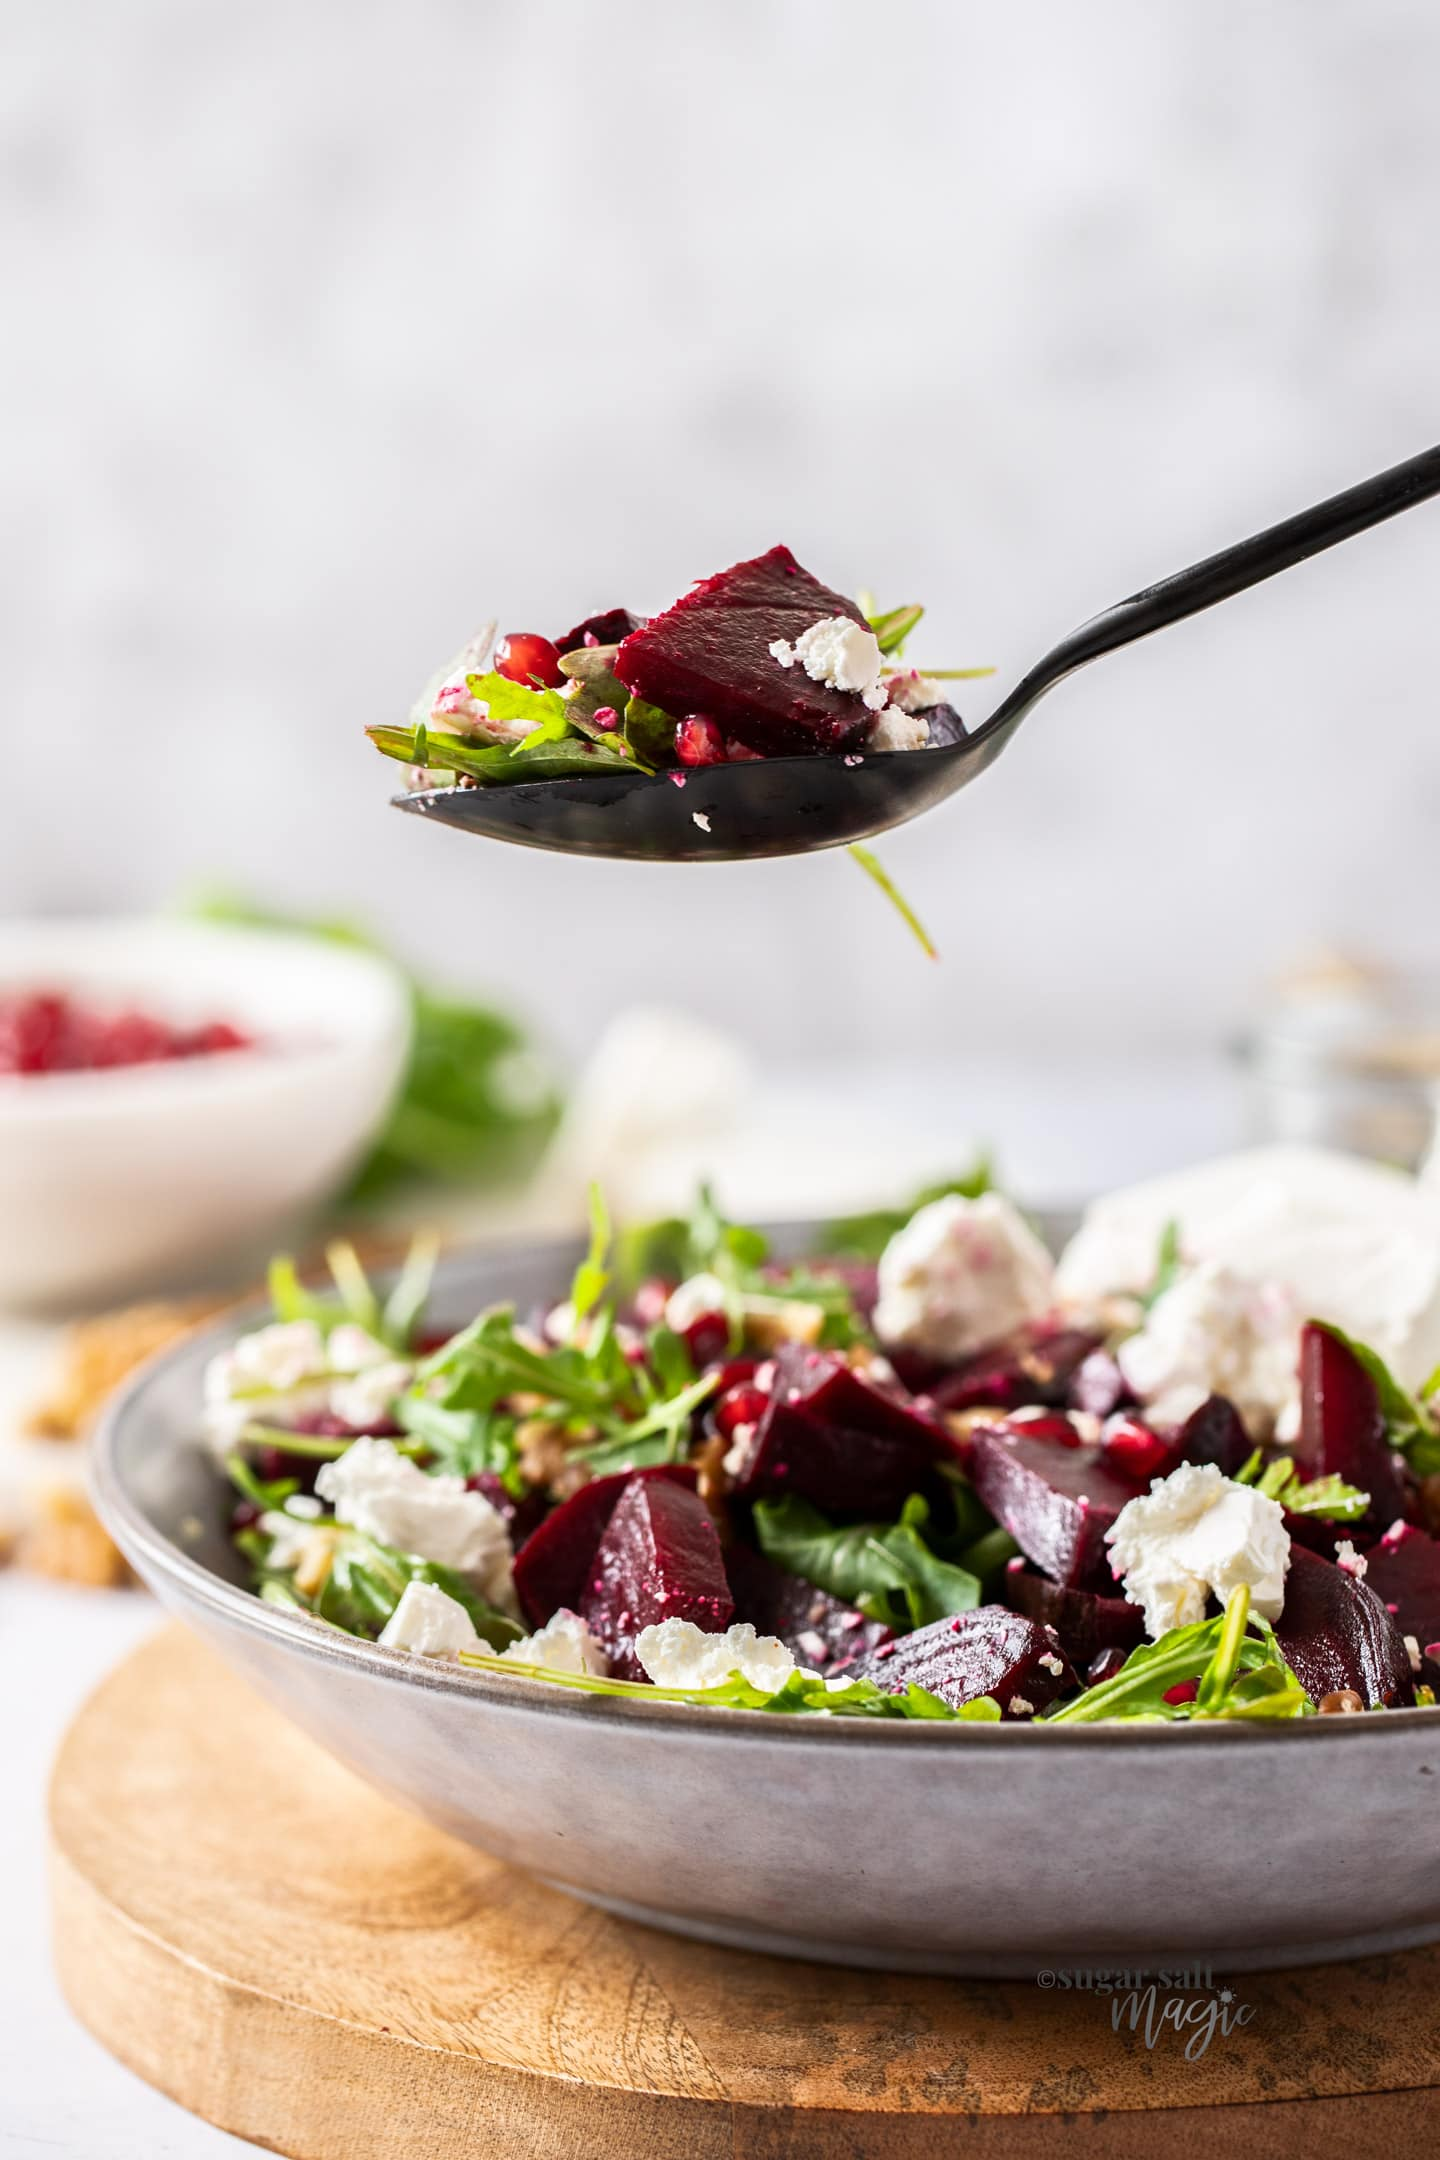 Beetroot and salad leaves on a black spoon hovering above a bowl of salad